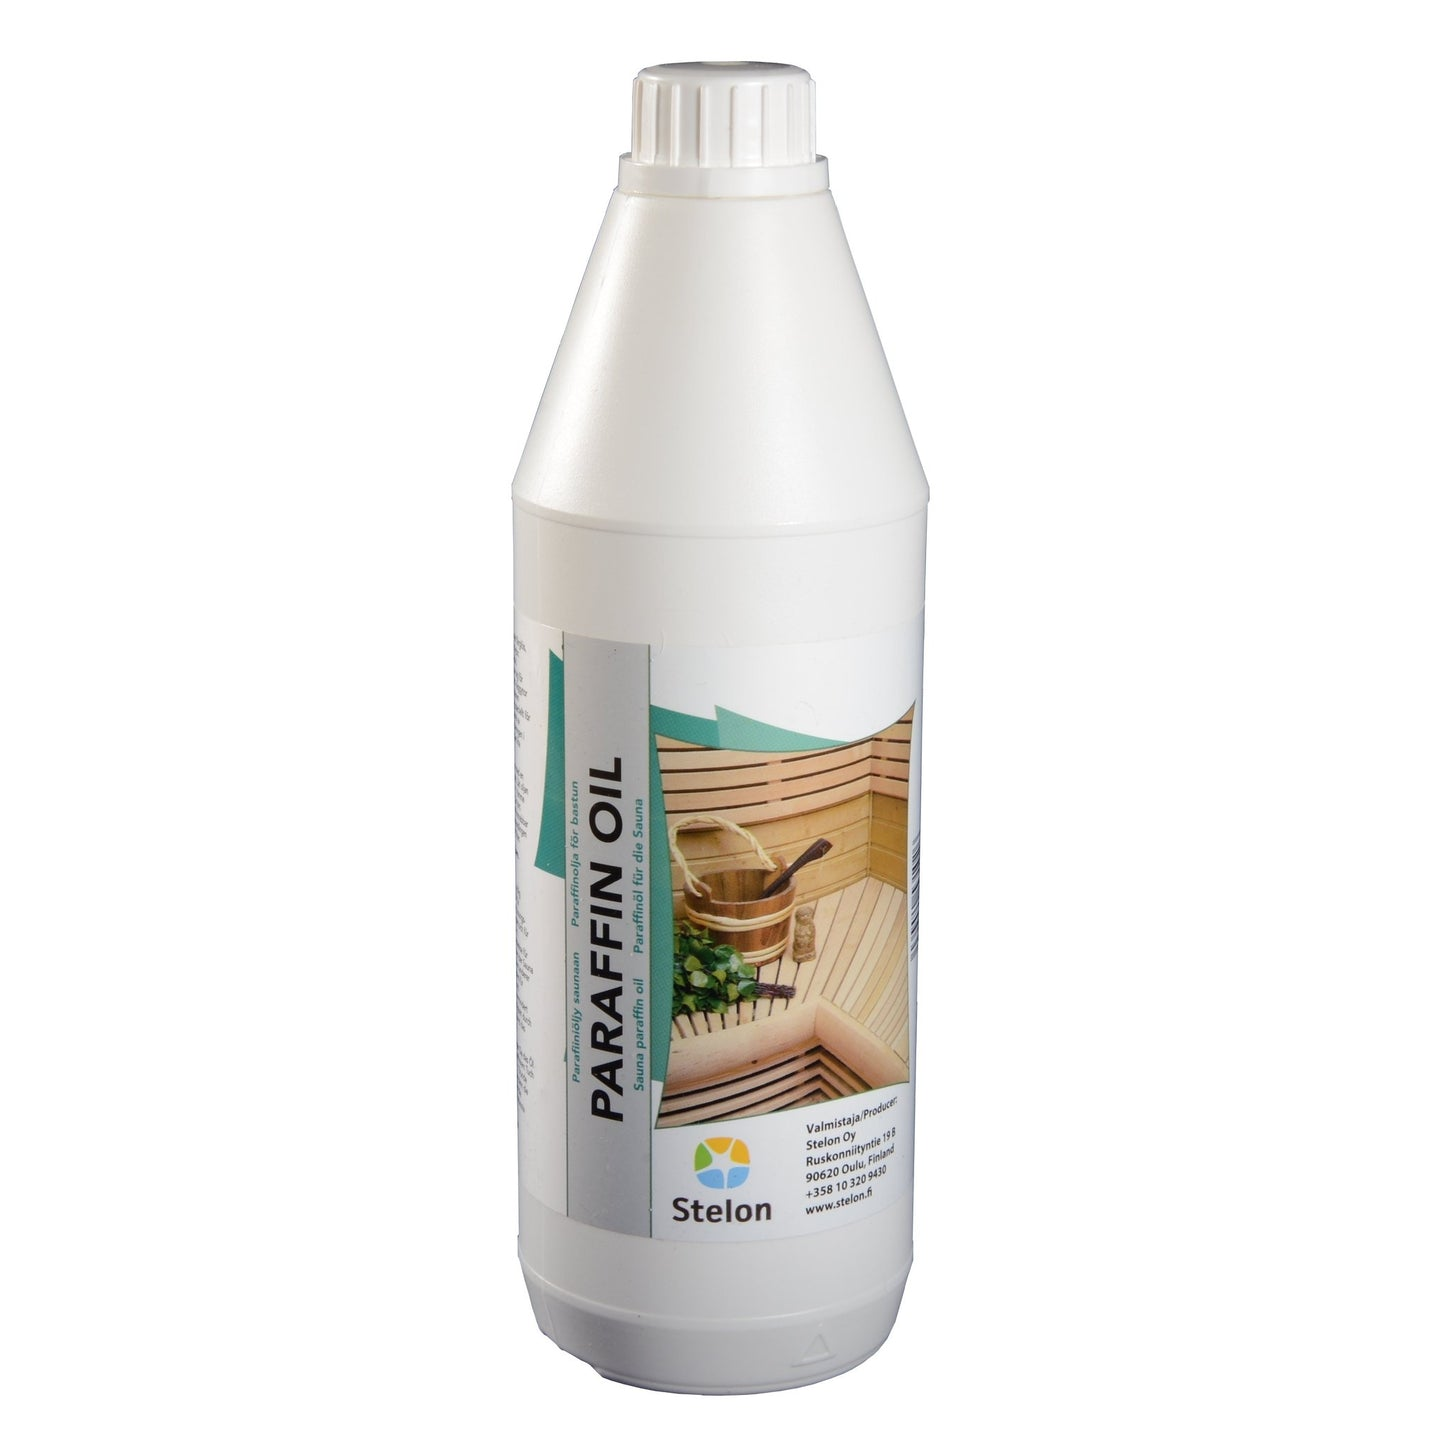 Sauna Paraffin Oil - Specialist Sauna Wood Treatment 1 Litre  Sauna Cleaning & Wood Treatment Finnmark Sauna